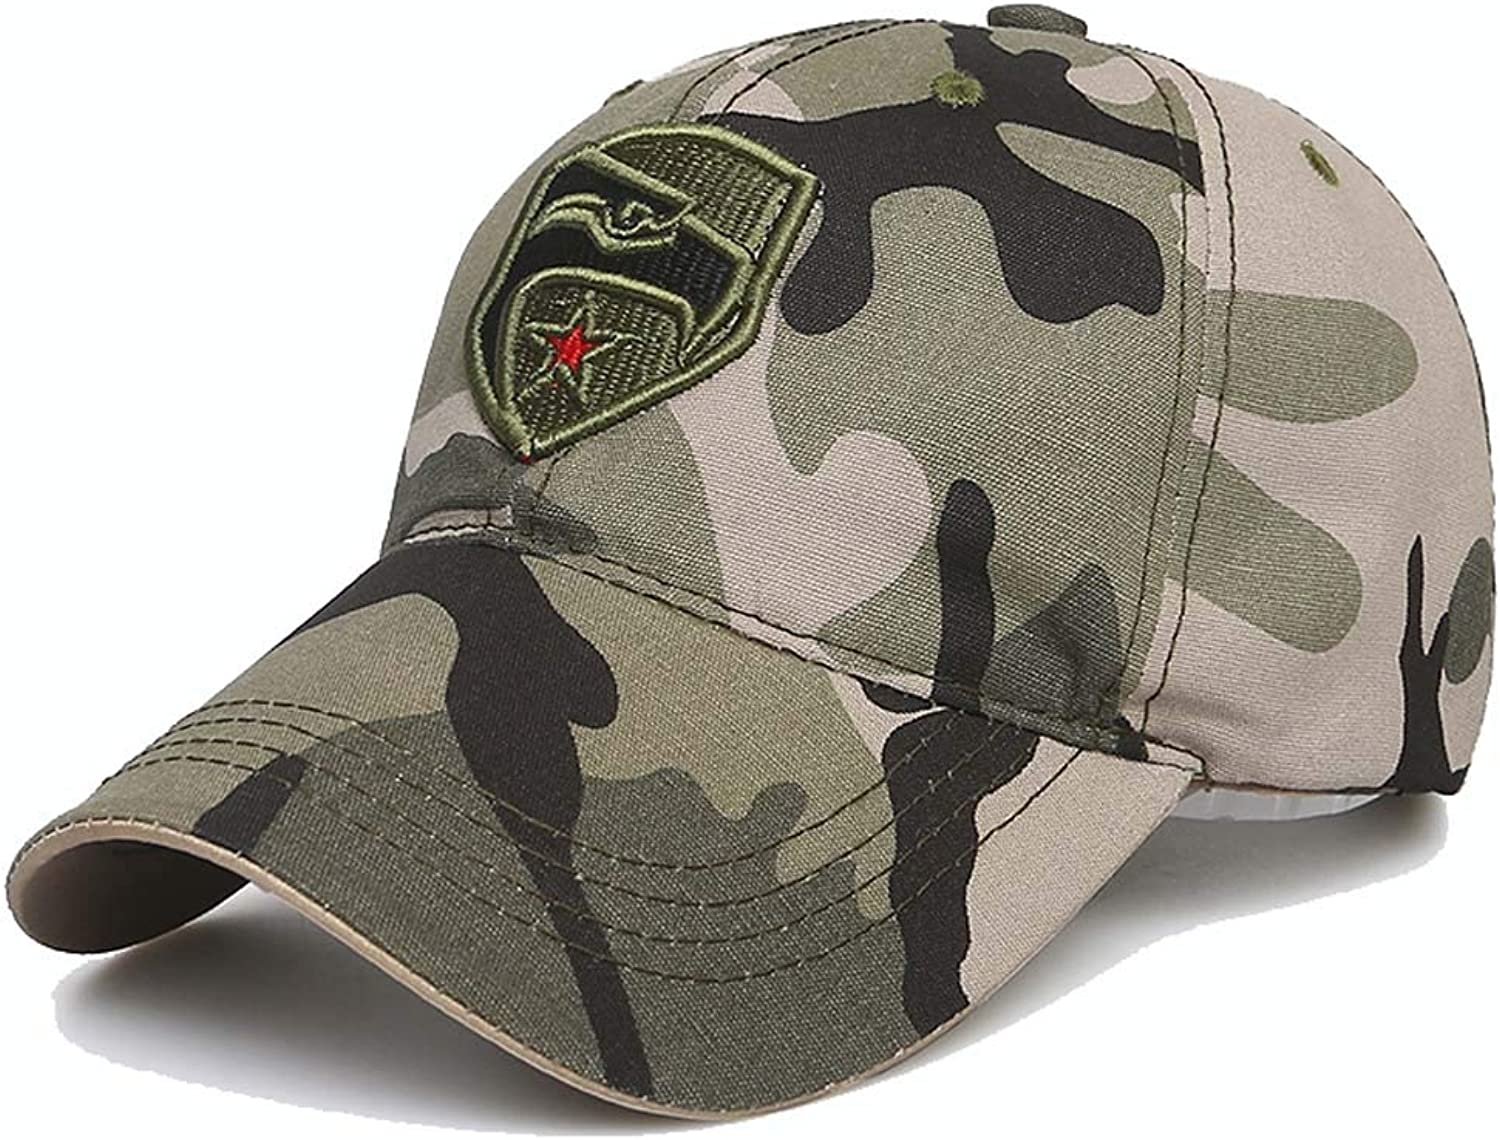 Camouflage Army Green Men's Men's Men's Baseball Cap Fashion